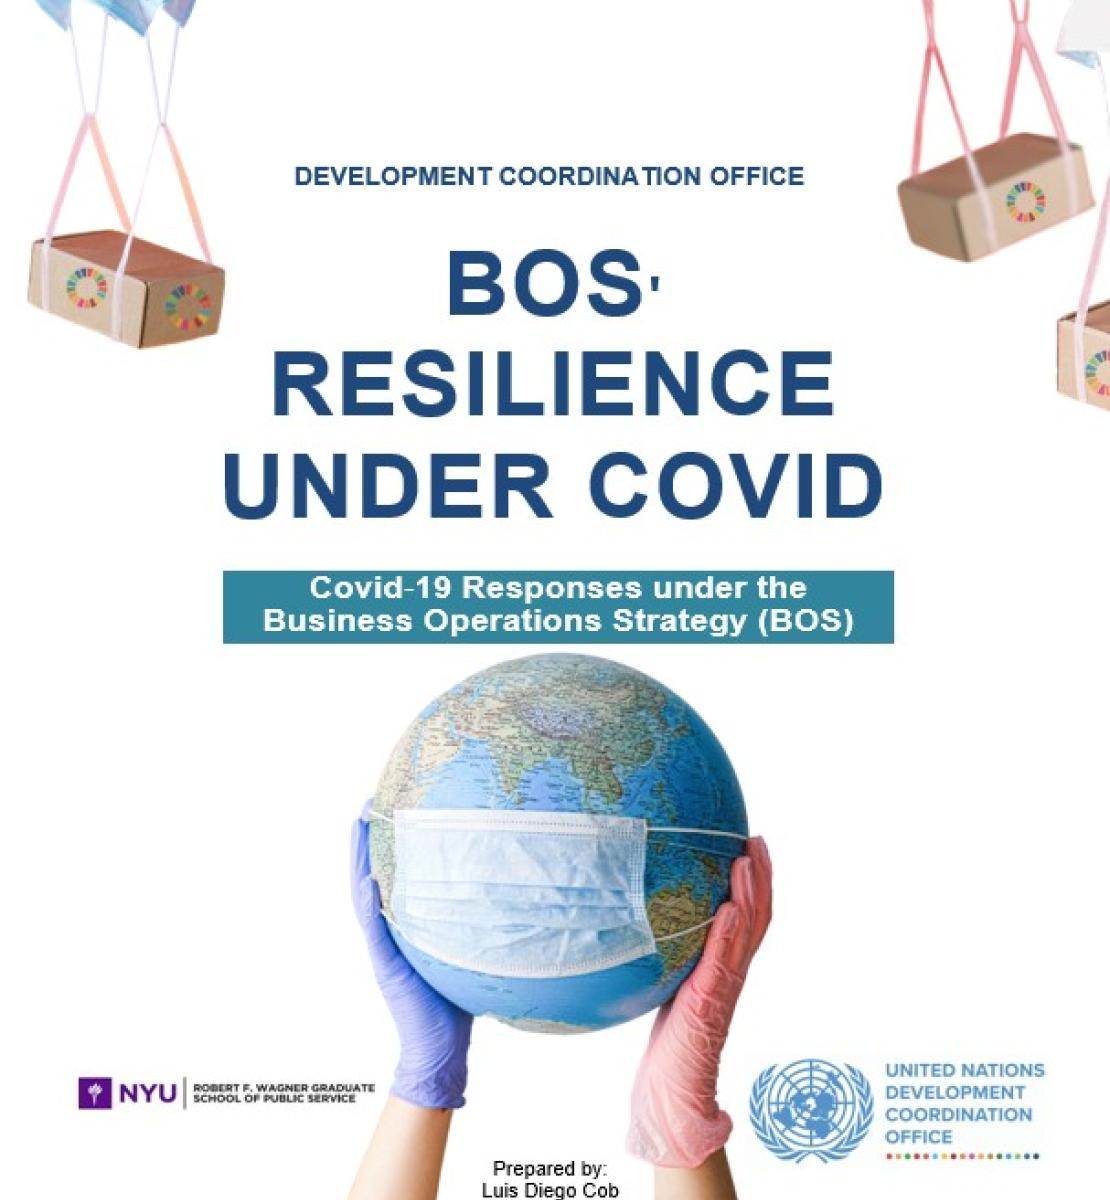 """The image reads the title """"BOS' resilience under Covid: Covid 19 responses under the Business Operations Strategy. The image shows two hands with gloves holding up a 3-D globe with a face mask. There are boxes with SDG symbols coming down from the top with parachutes made of face masks."""